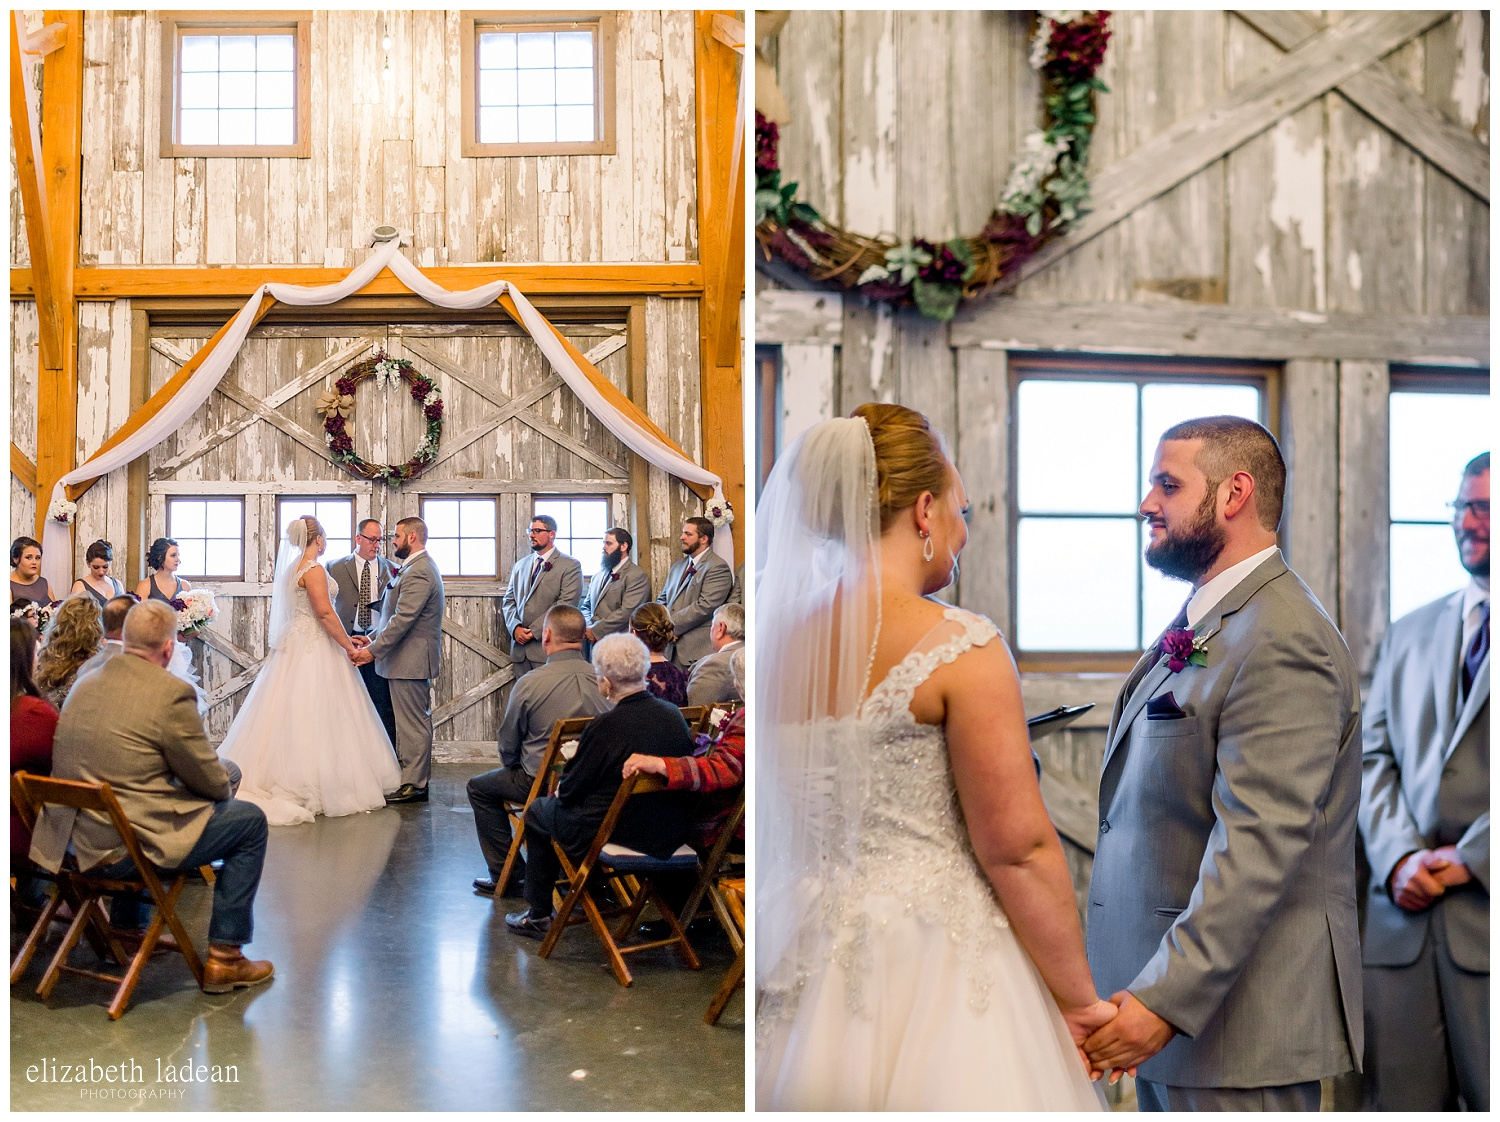 Weston-Timber-Barn-Wedding-Photography-L+A-elizabeth-ladean0photo_1896.jpg